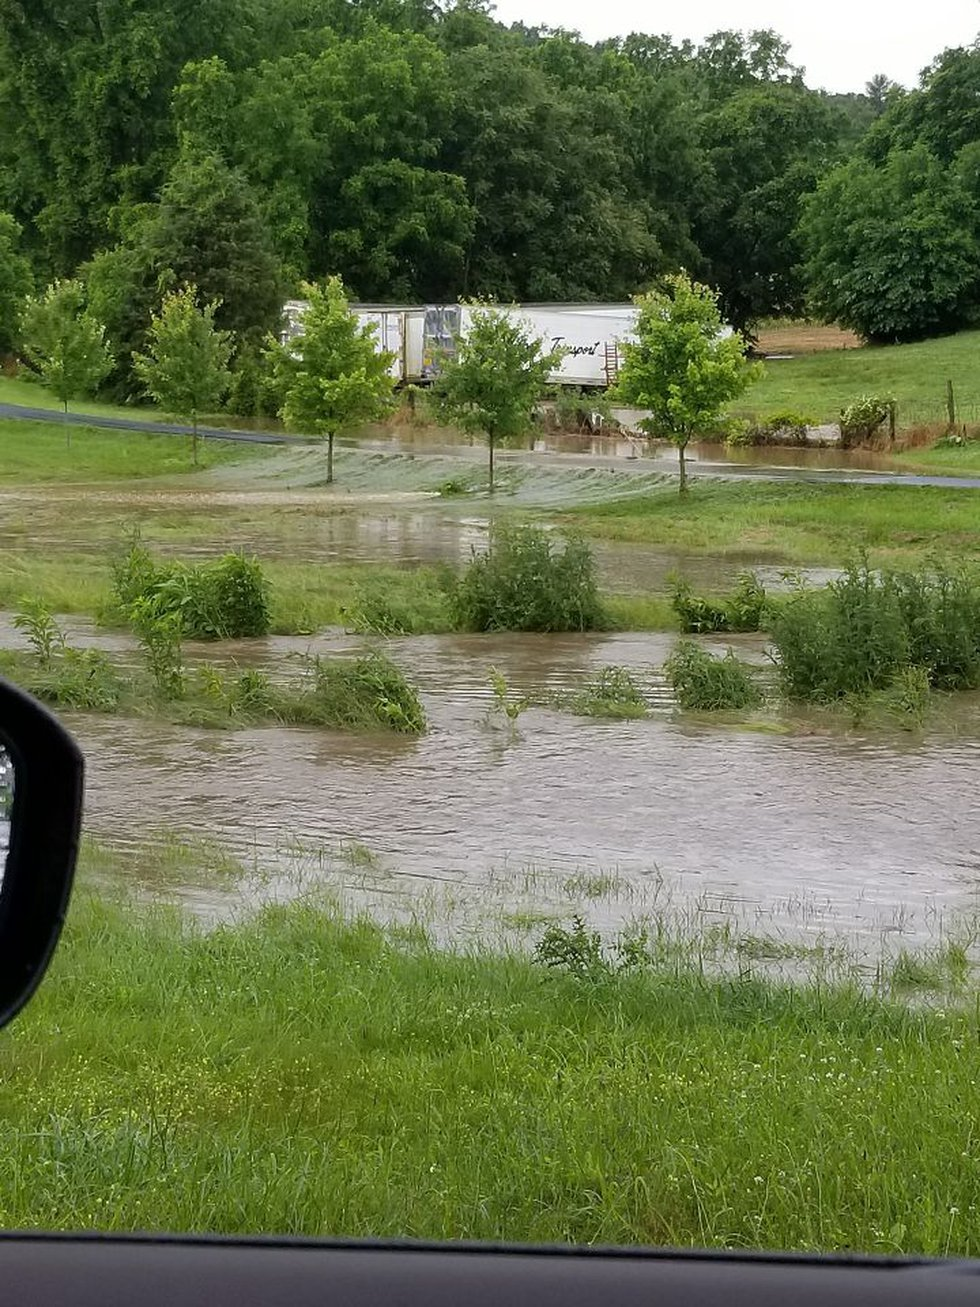 Water pours over a road near Basye, VA